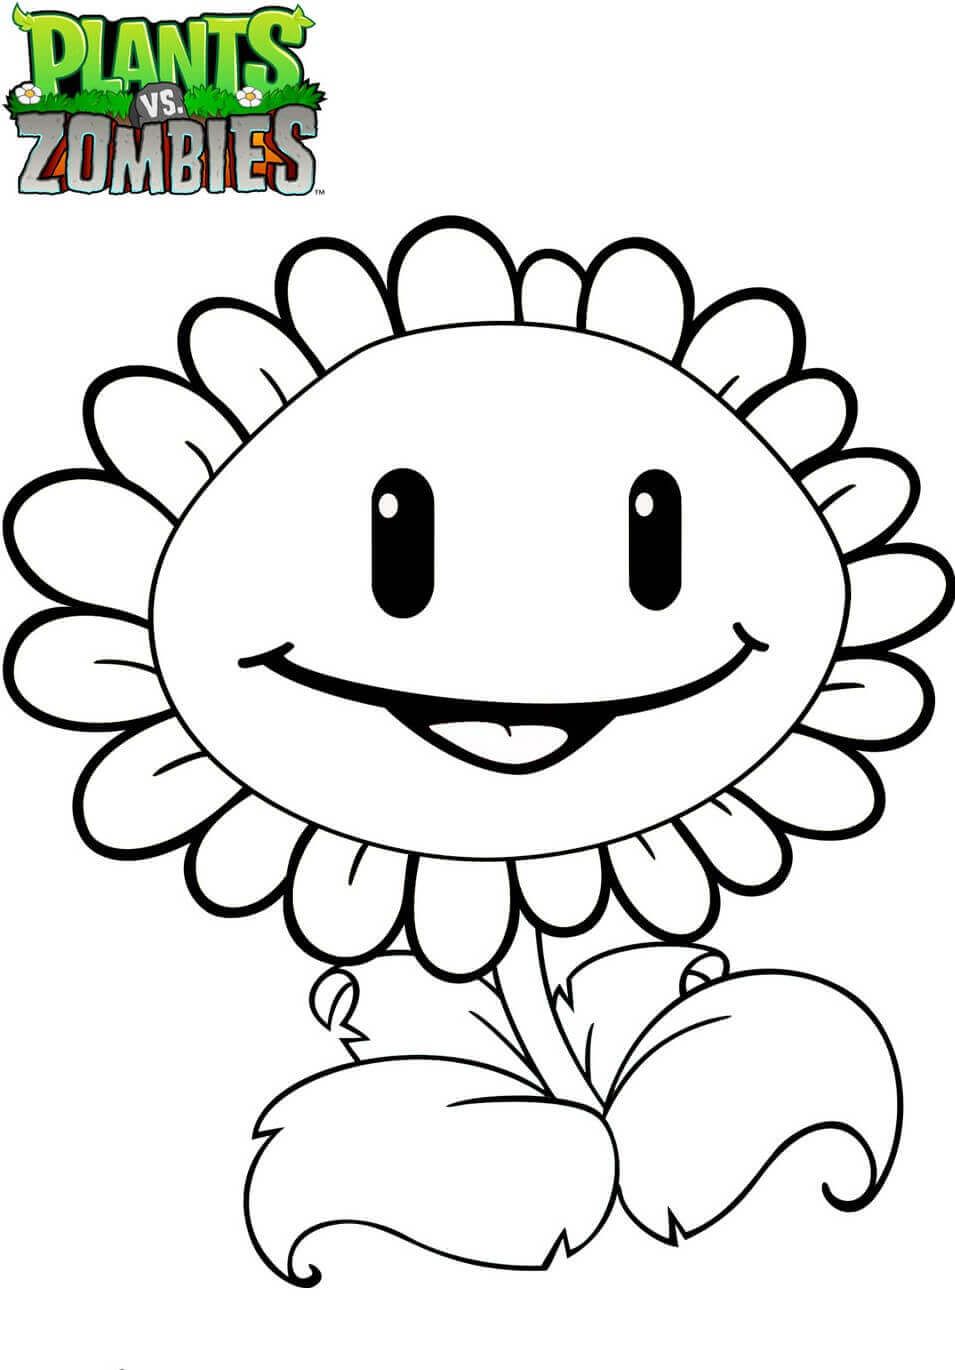 Sunflower From Plants Vs Zombies Coloring Page